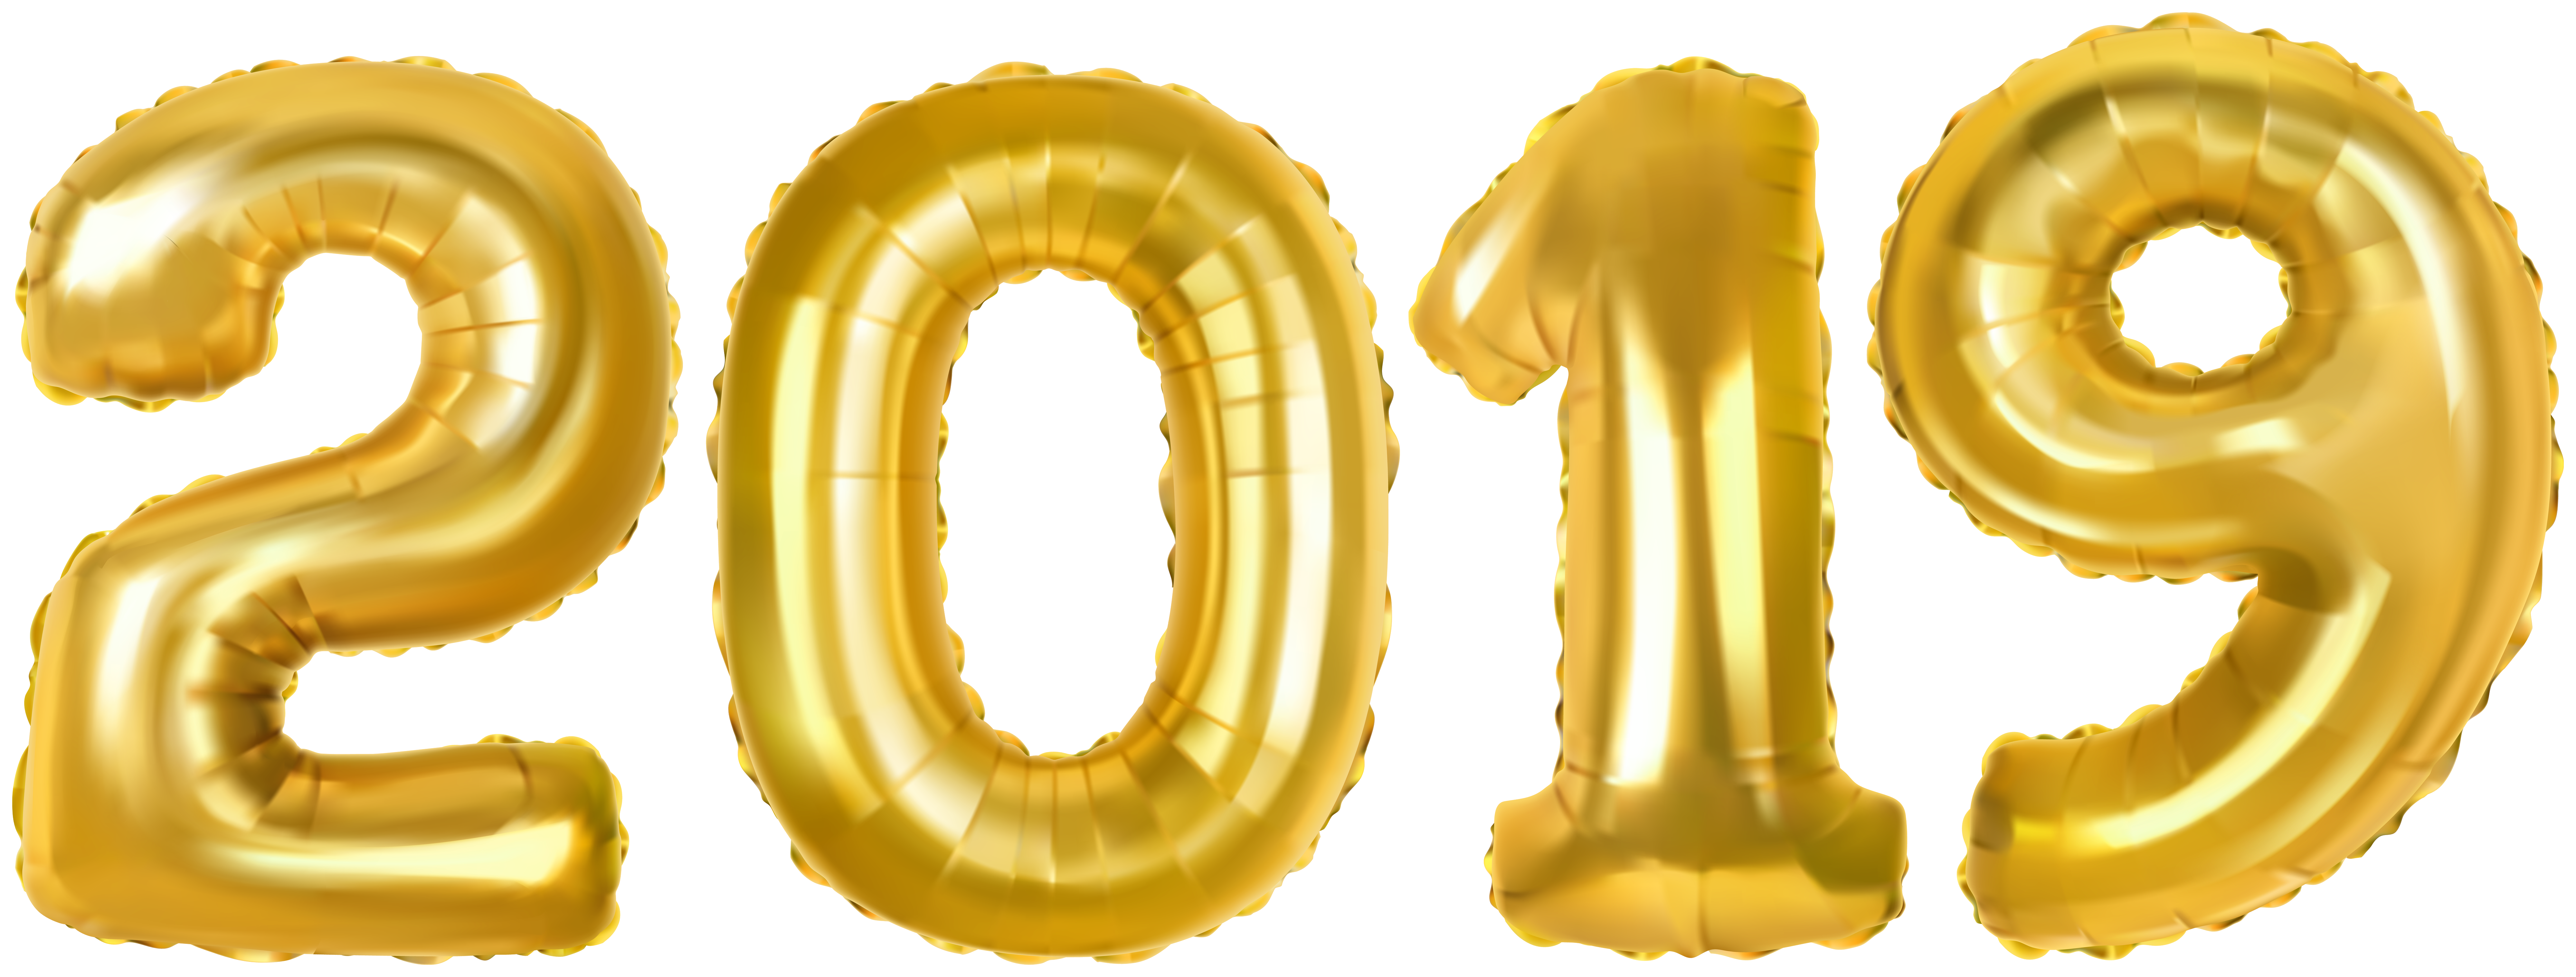 2019 gold balloons clipart clip art royalty free 2019 Gold Baloons PNG Clip Art Image | Gallery Yopriceville - High ... clip art royalty free